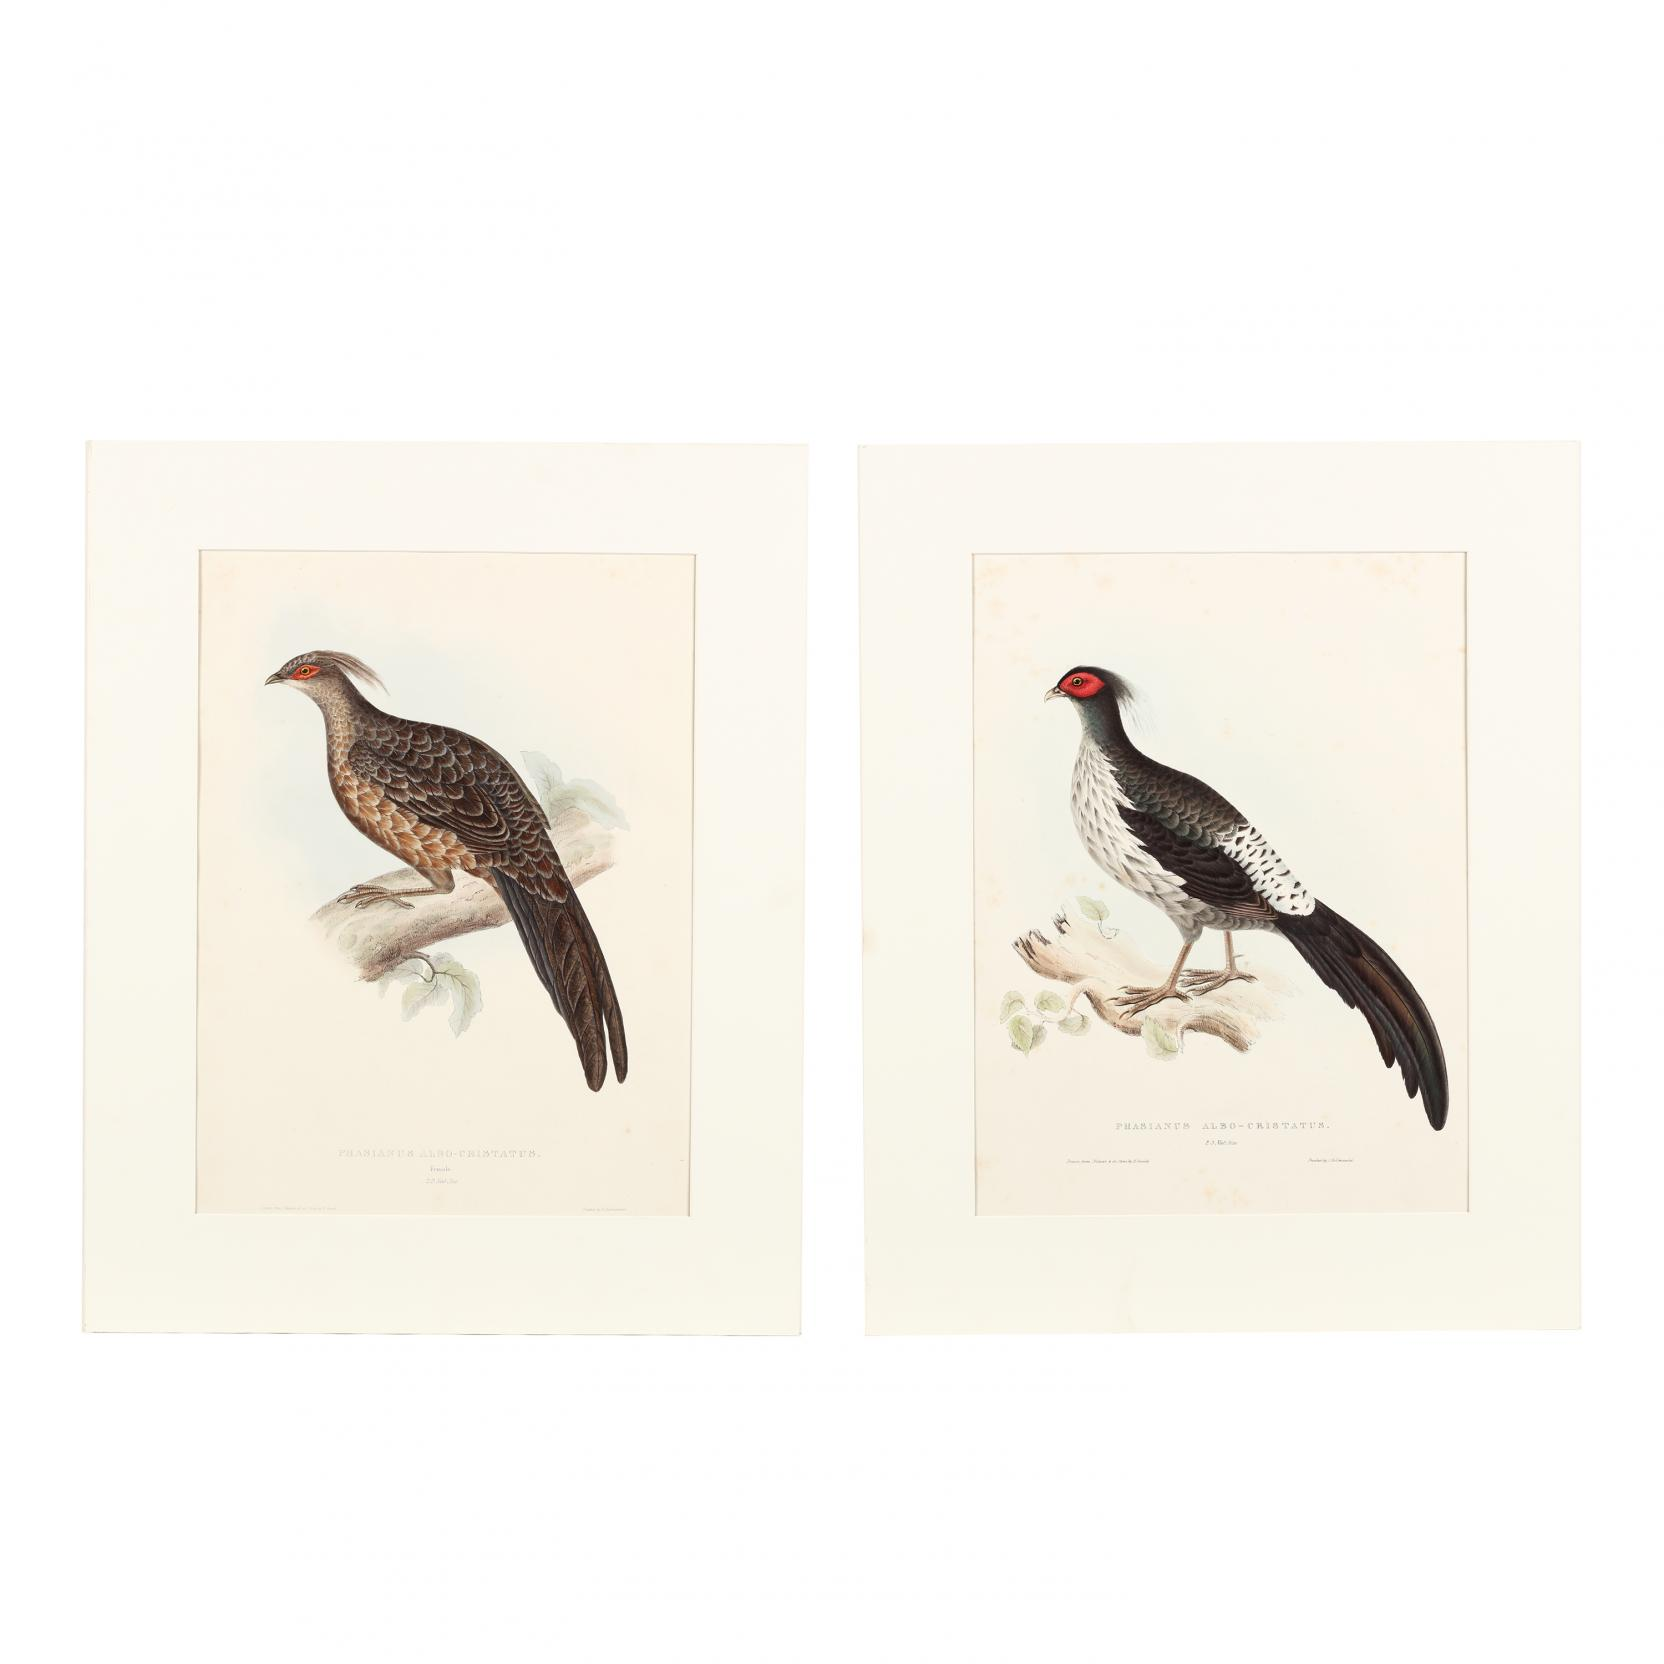 elizabeth-gould-1804-1841-two-prints-depicting-the-male-and-female-phasianus-albo-cristatus